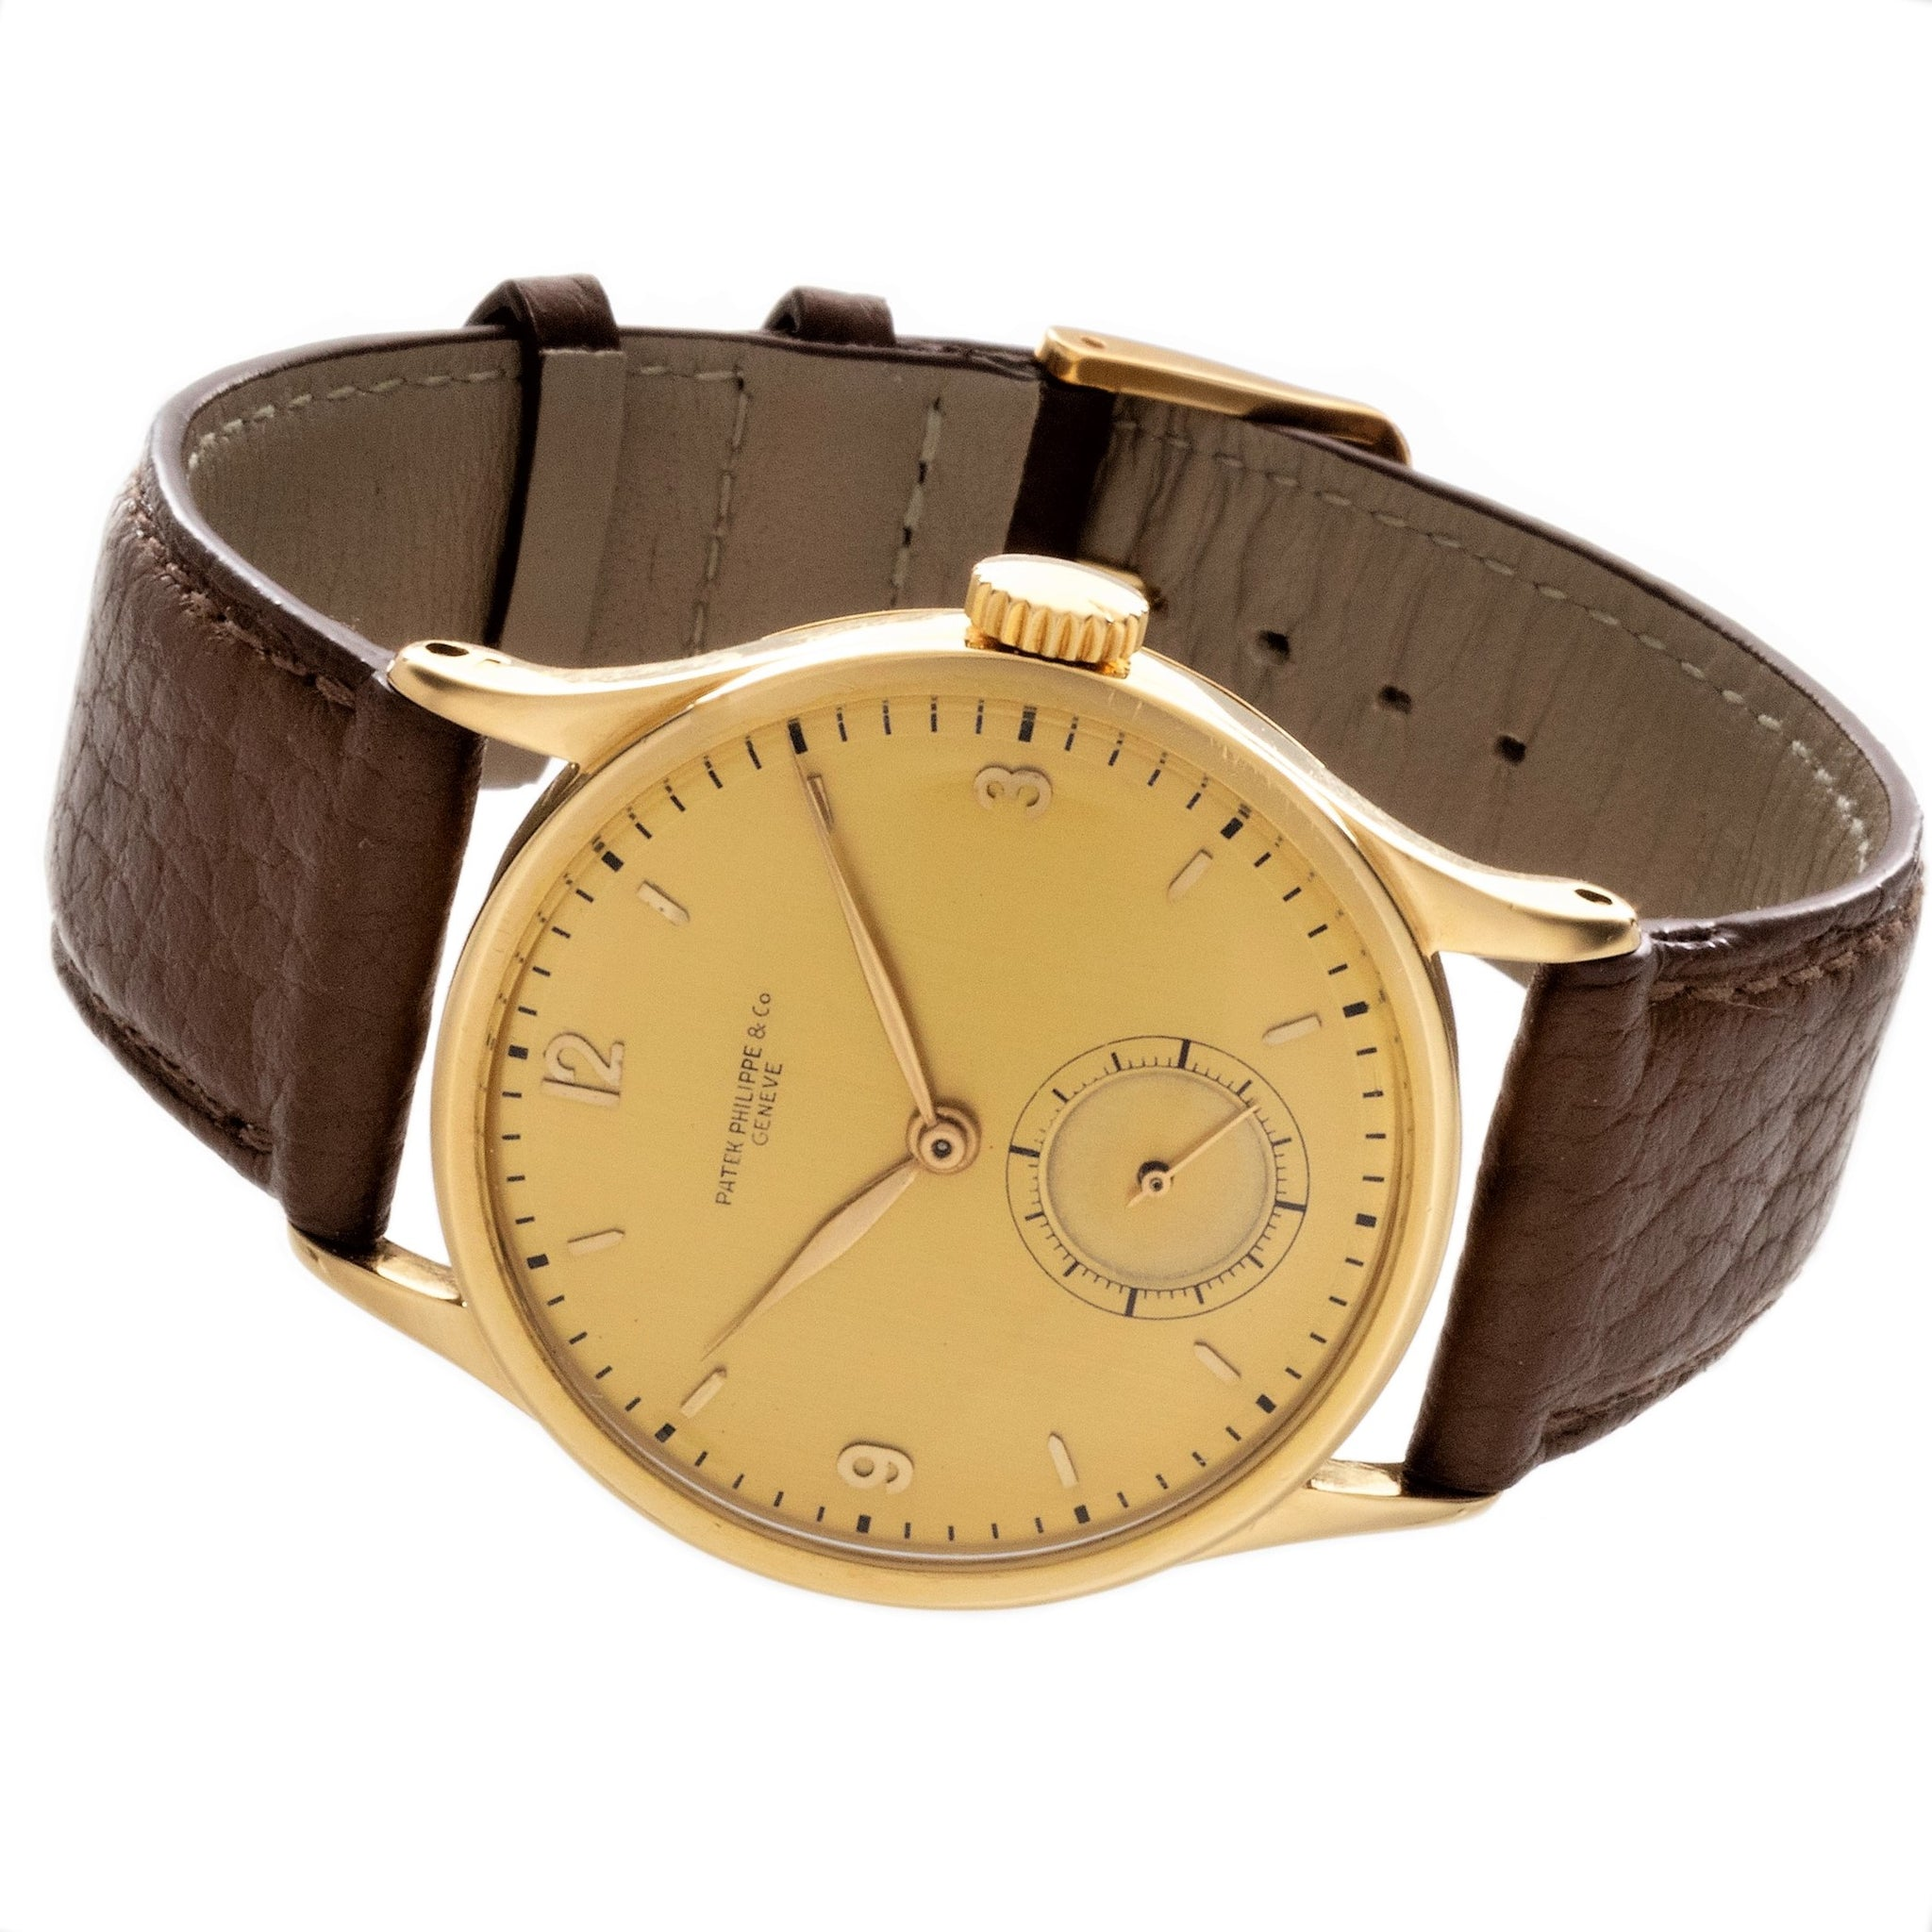 Patek Philippe 570J  Calatrava 36 mm 18 Karat Yellow Gold Watch,  Circa 1943